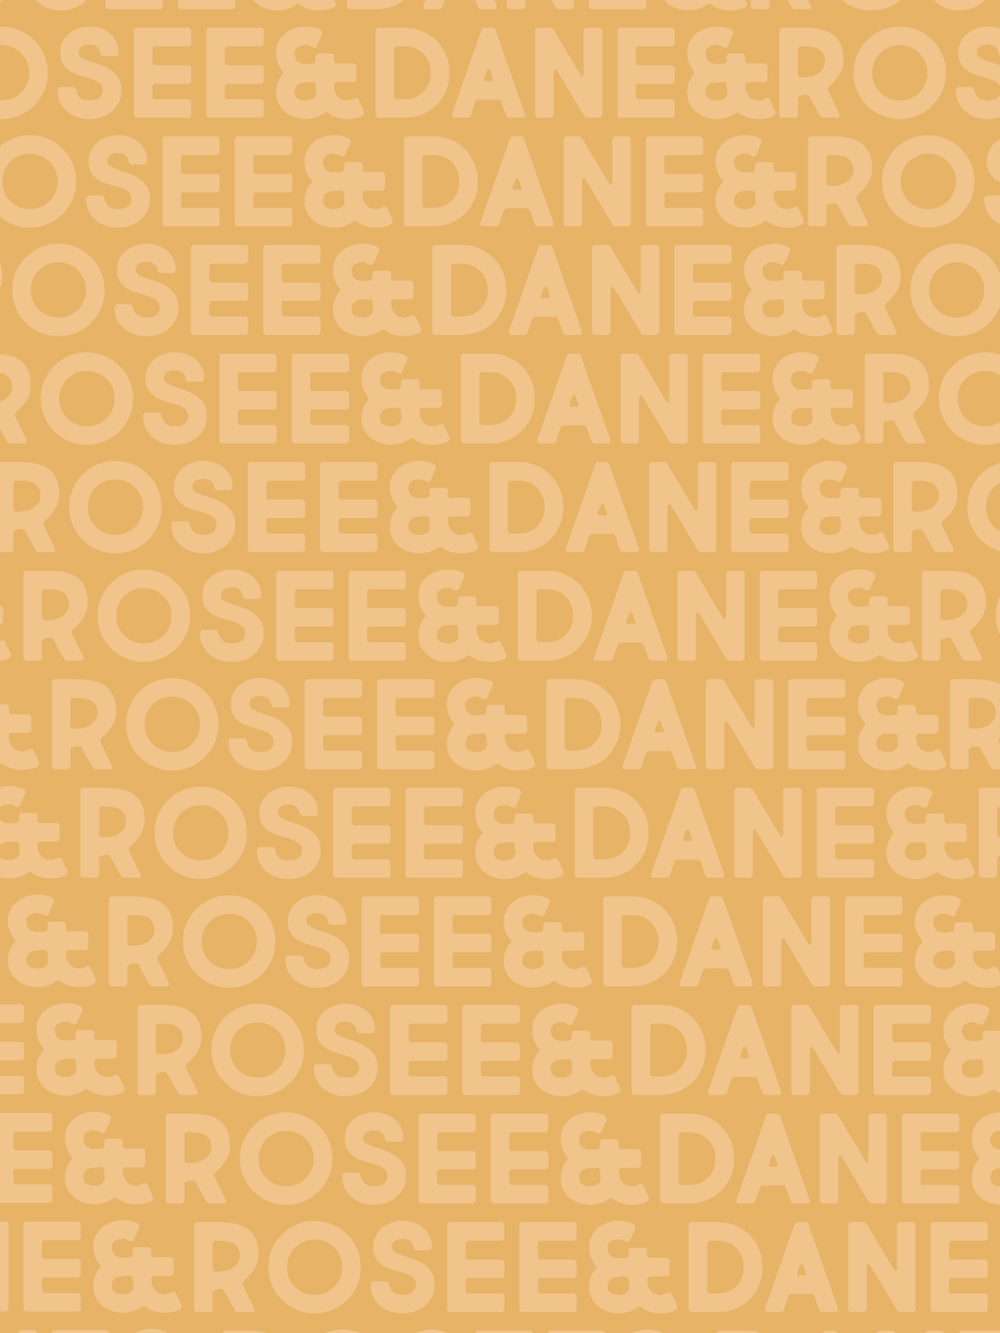 Rosee and Dane Shower Pattern.png